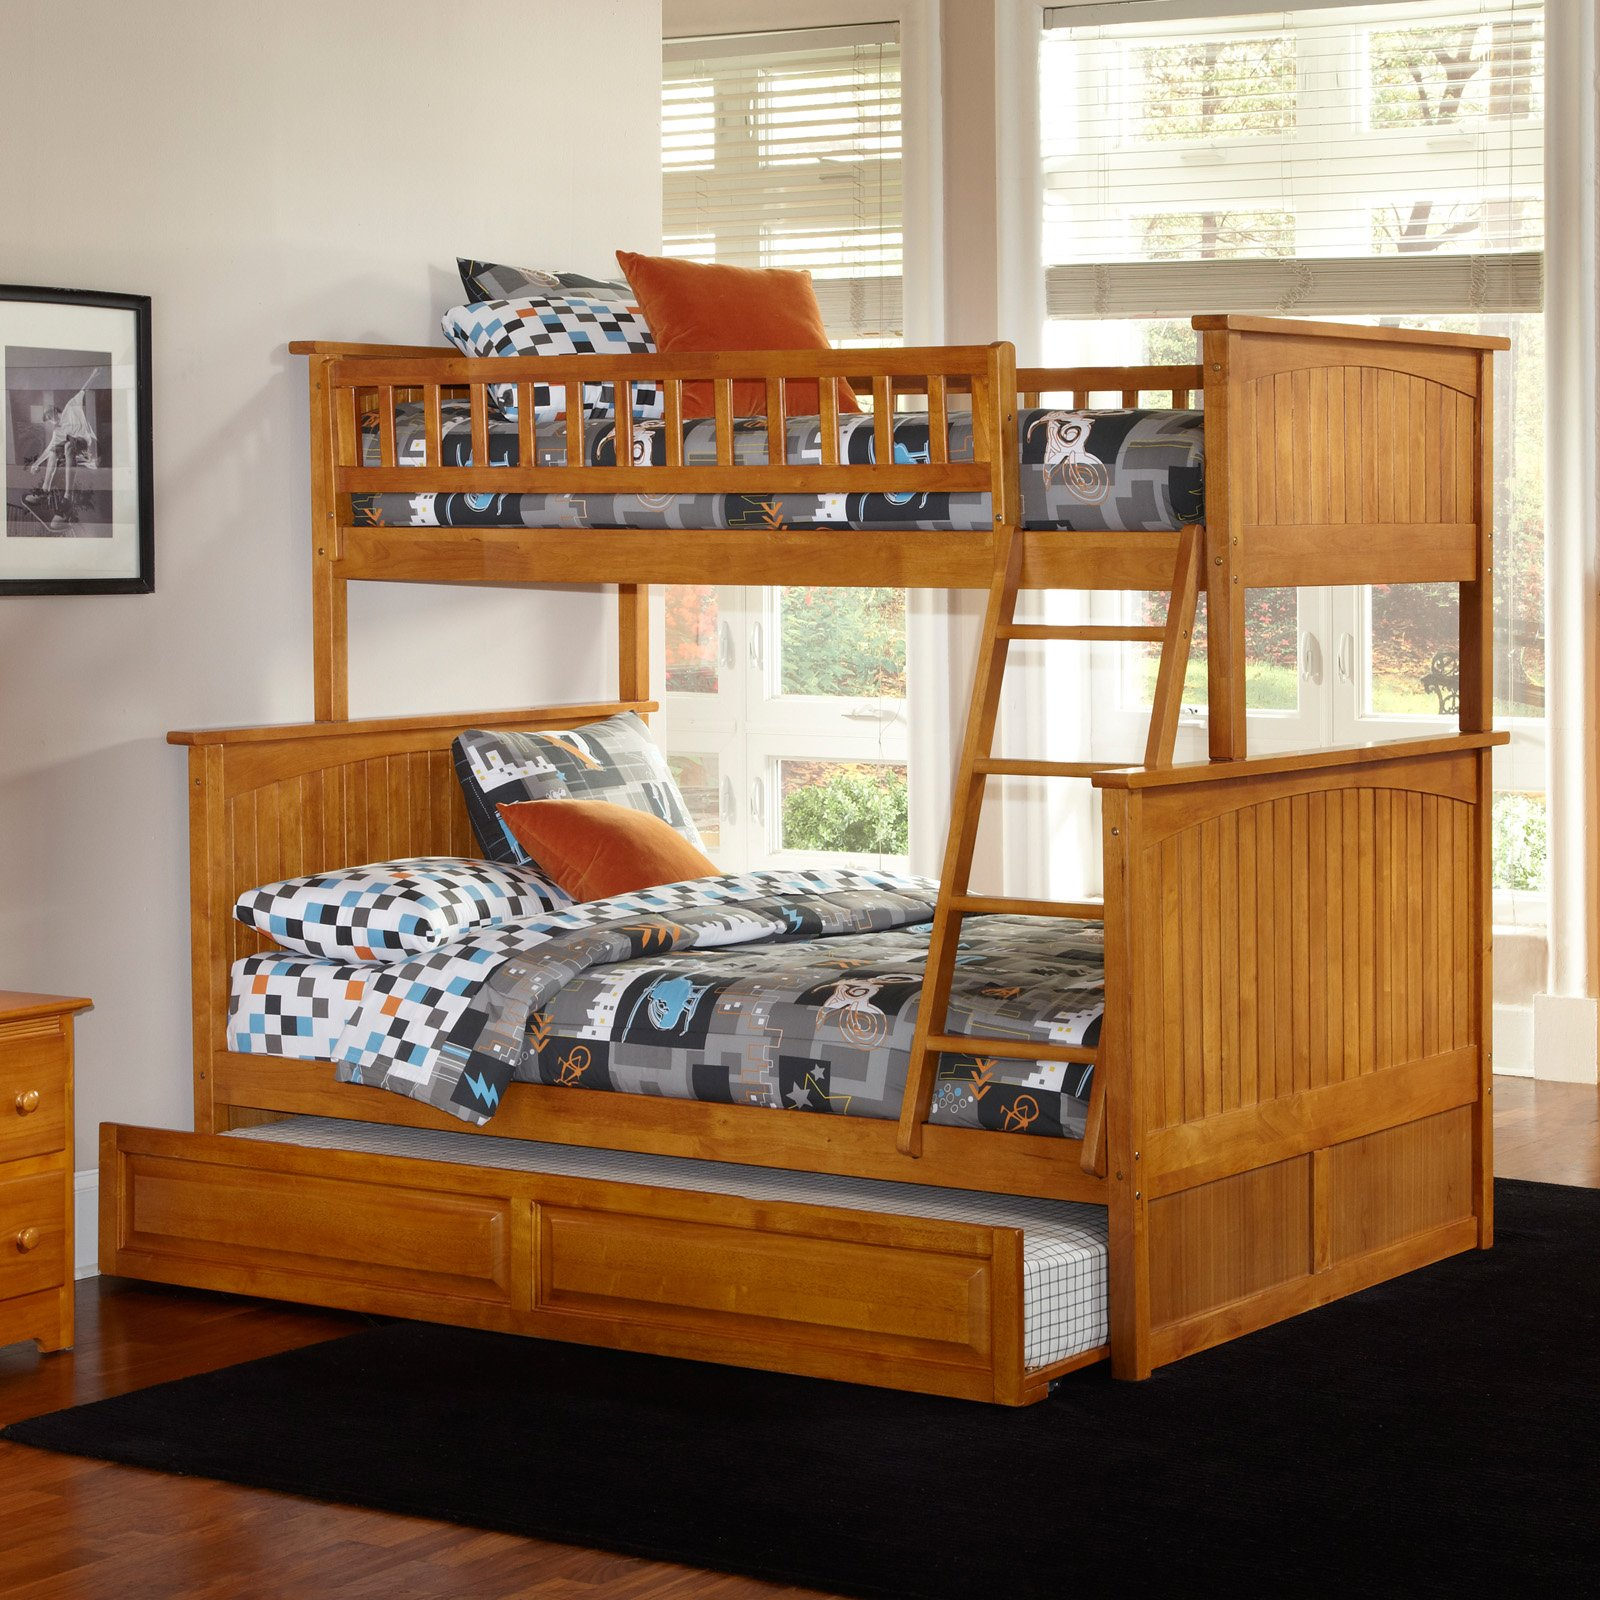 Unique Bunk Beds: Various Types Of Bed Frames